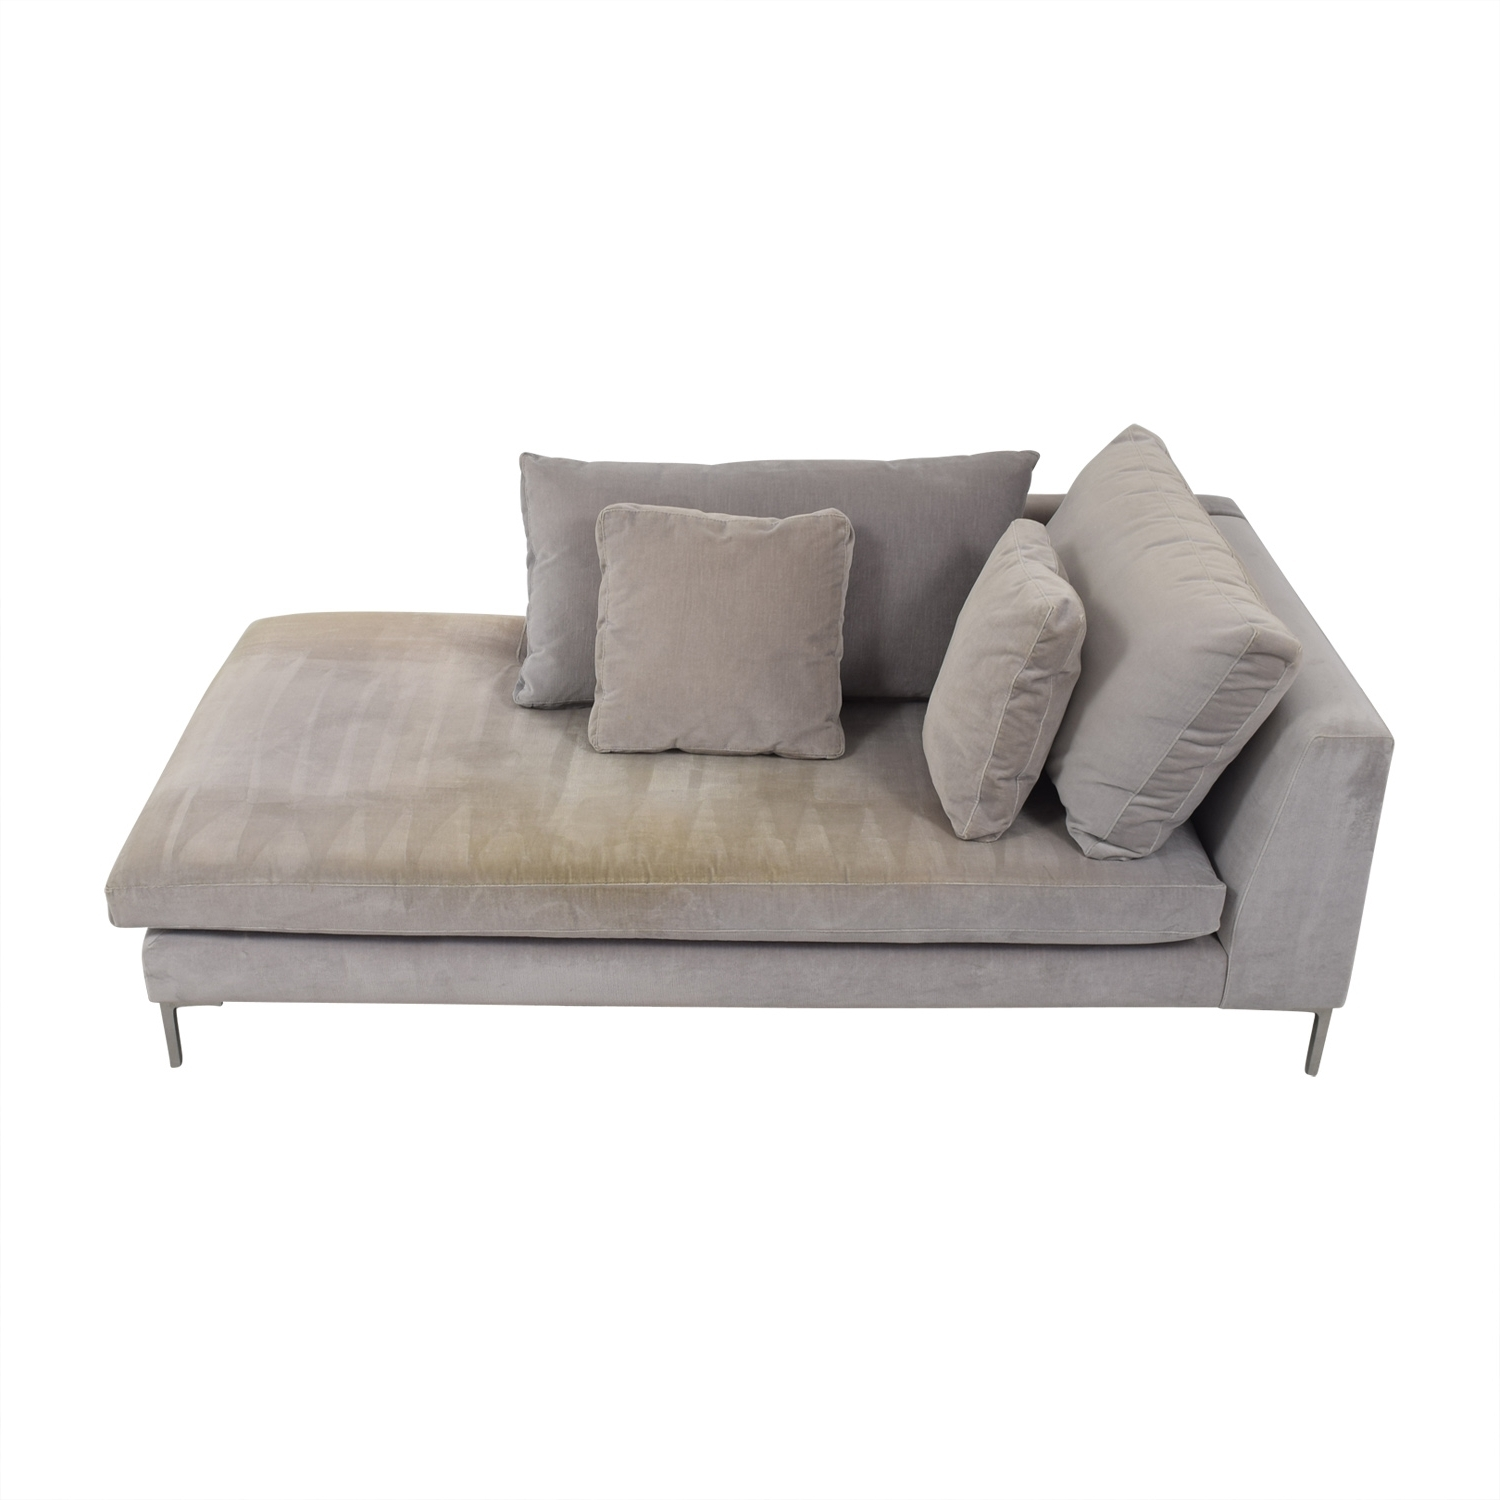 [%87% Off – Abc Carpet And Home Abc Right Arm Velvet Chaise / Sofas With Widely Used Chaise Sofas|Chaise Sofas For Recent 87% Off – Abc Carpet And Home Abc Right Arm Velvet Chaise / Sofas|Most Recently Released Chaise Sofas With Regard To 87% Off – Abc Carpet And Home Abc Right Arm Velvet Chaise / Sofas|Well Liked 87% Off – Abc Carpet And Home Abc Right Arm Velvet Chaise / Sofas Throughout Chaise Sofas%] (View 2 of 15)